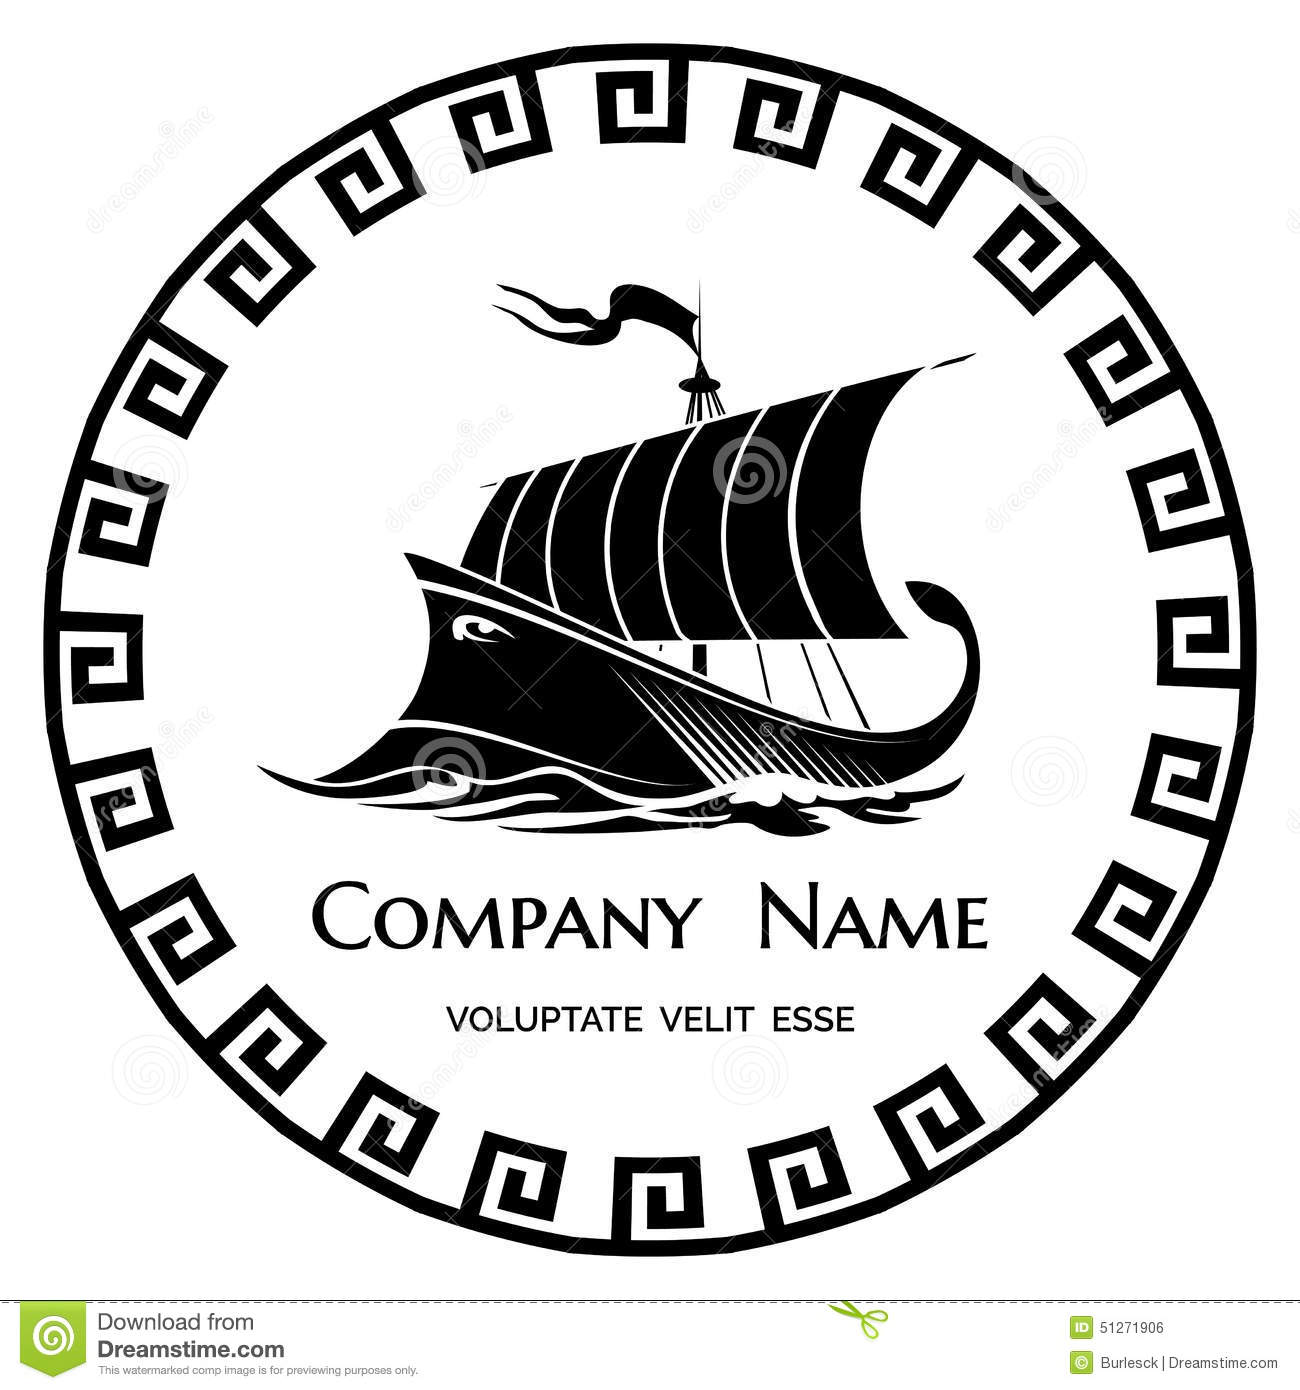 Galley stock illustrations 724 galley stock illustrations galley stock illustrations 724 galley stock illustrations vectors clipart dreamstime biocorpaavc Images